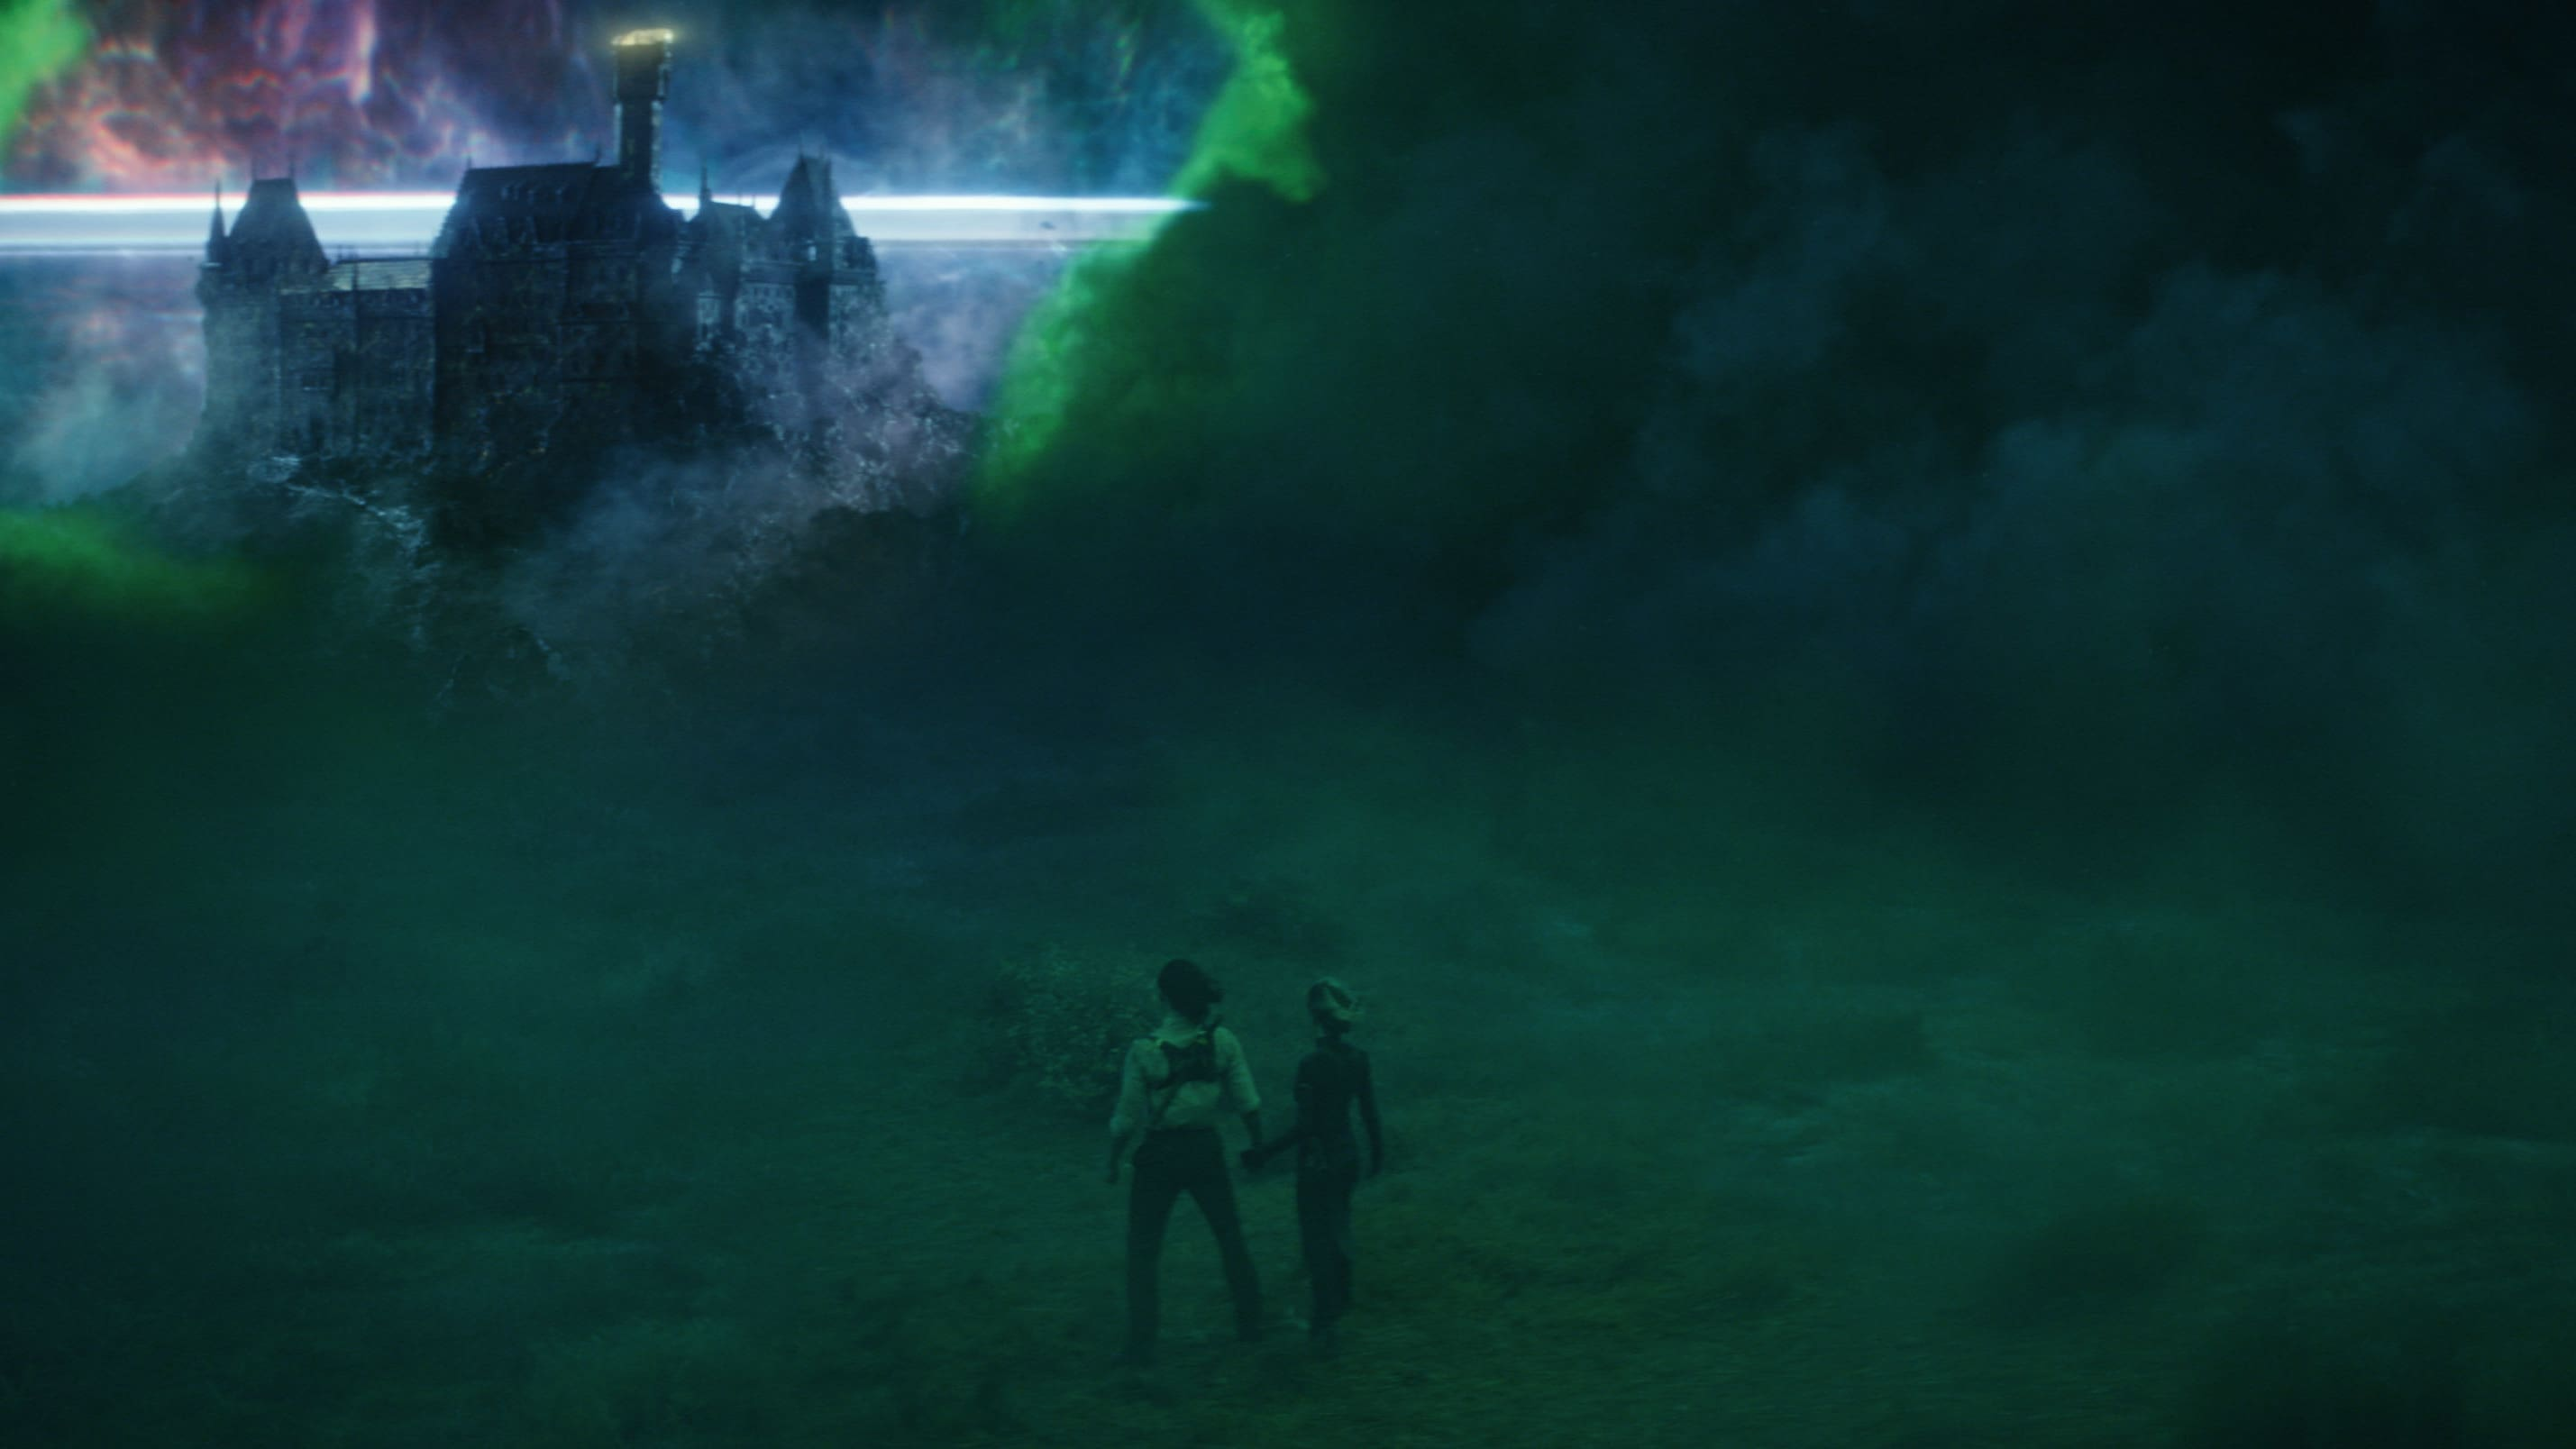 (L-R): Loki (TomHiddleston) and Sylvie (Sophia Di Martino) in Marvel Studios' LOKI, exclusively on Disney+. Photo courtesy of Marvel Studios. ©Marvel Studios 2021. All Rights Reserved.